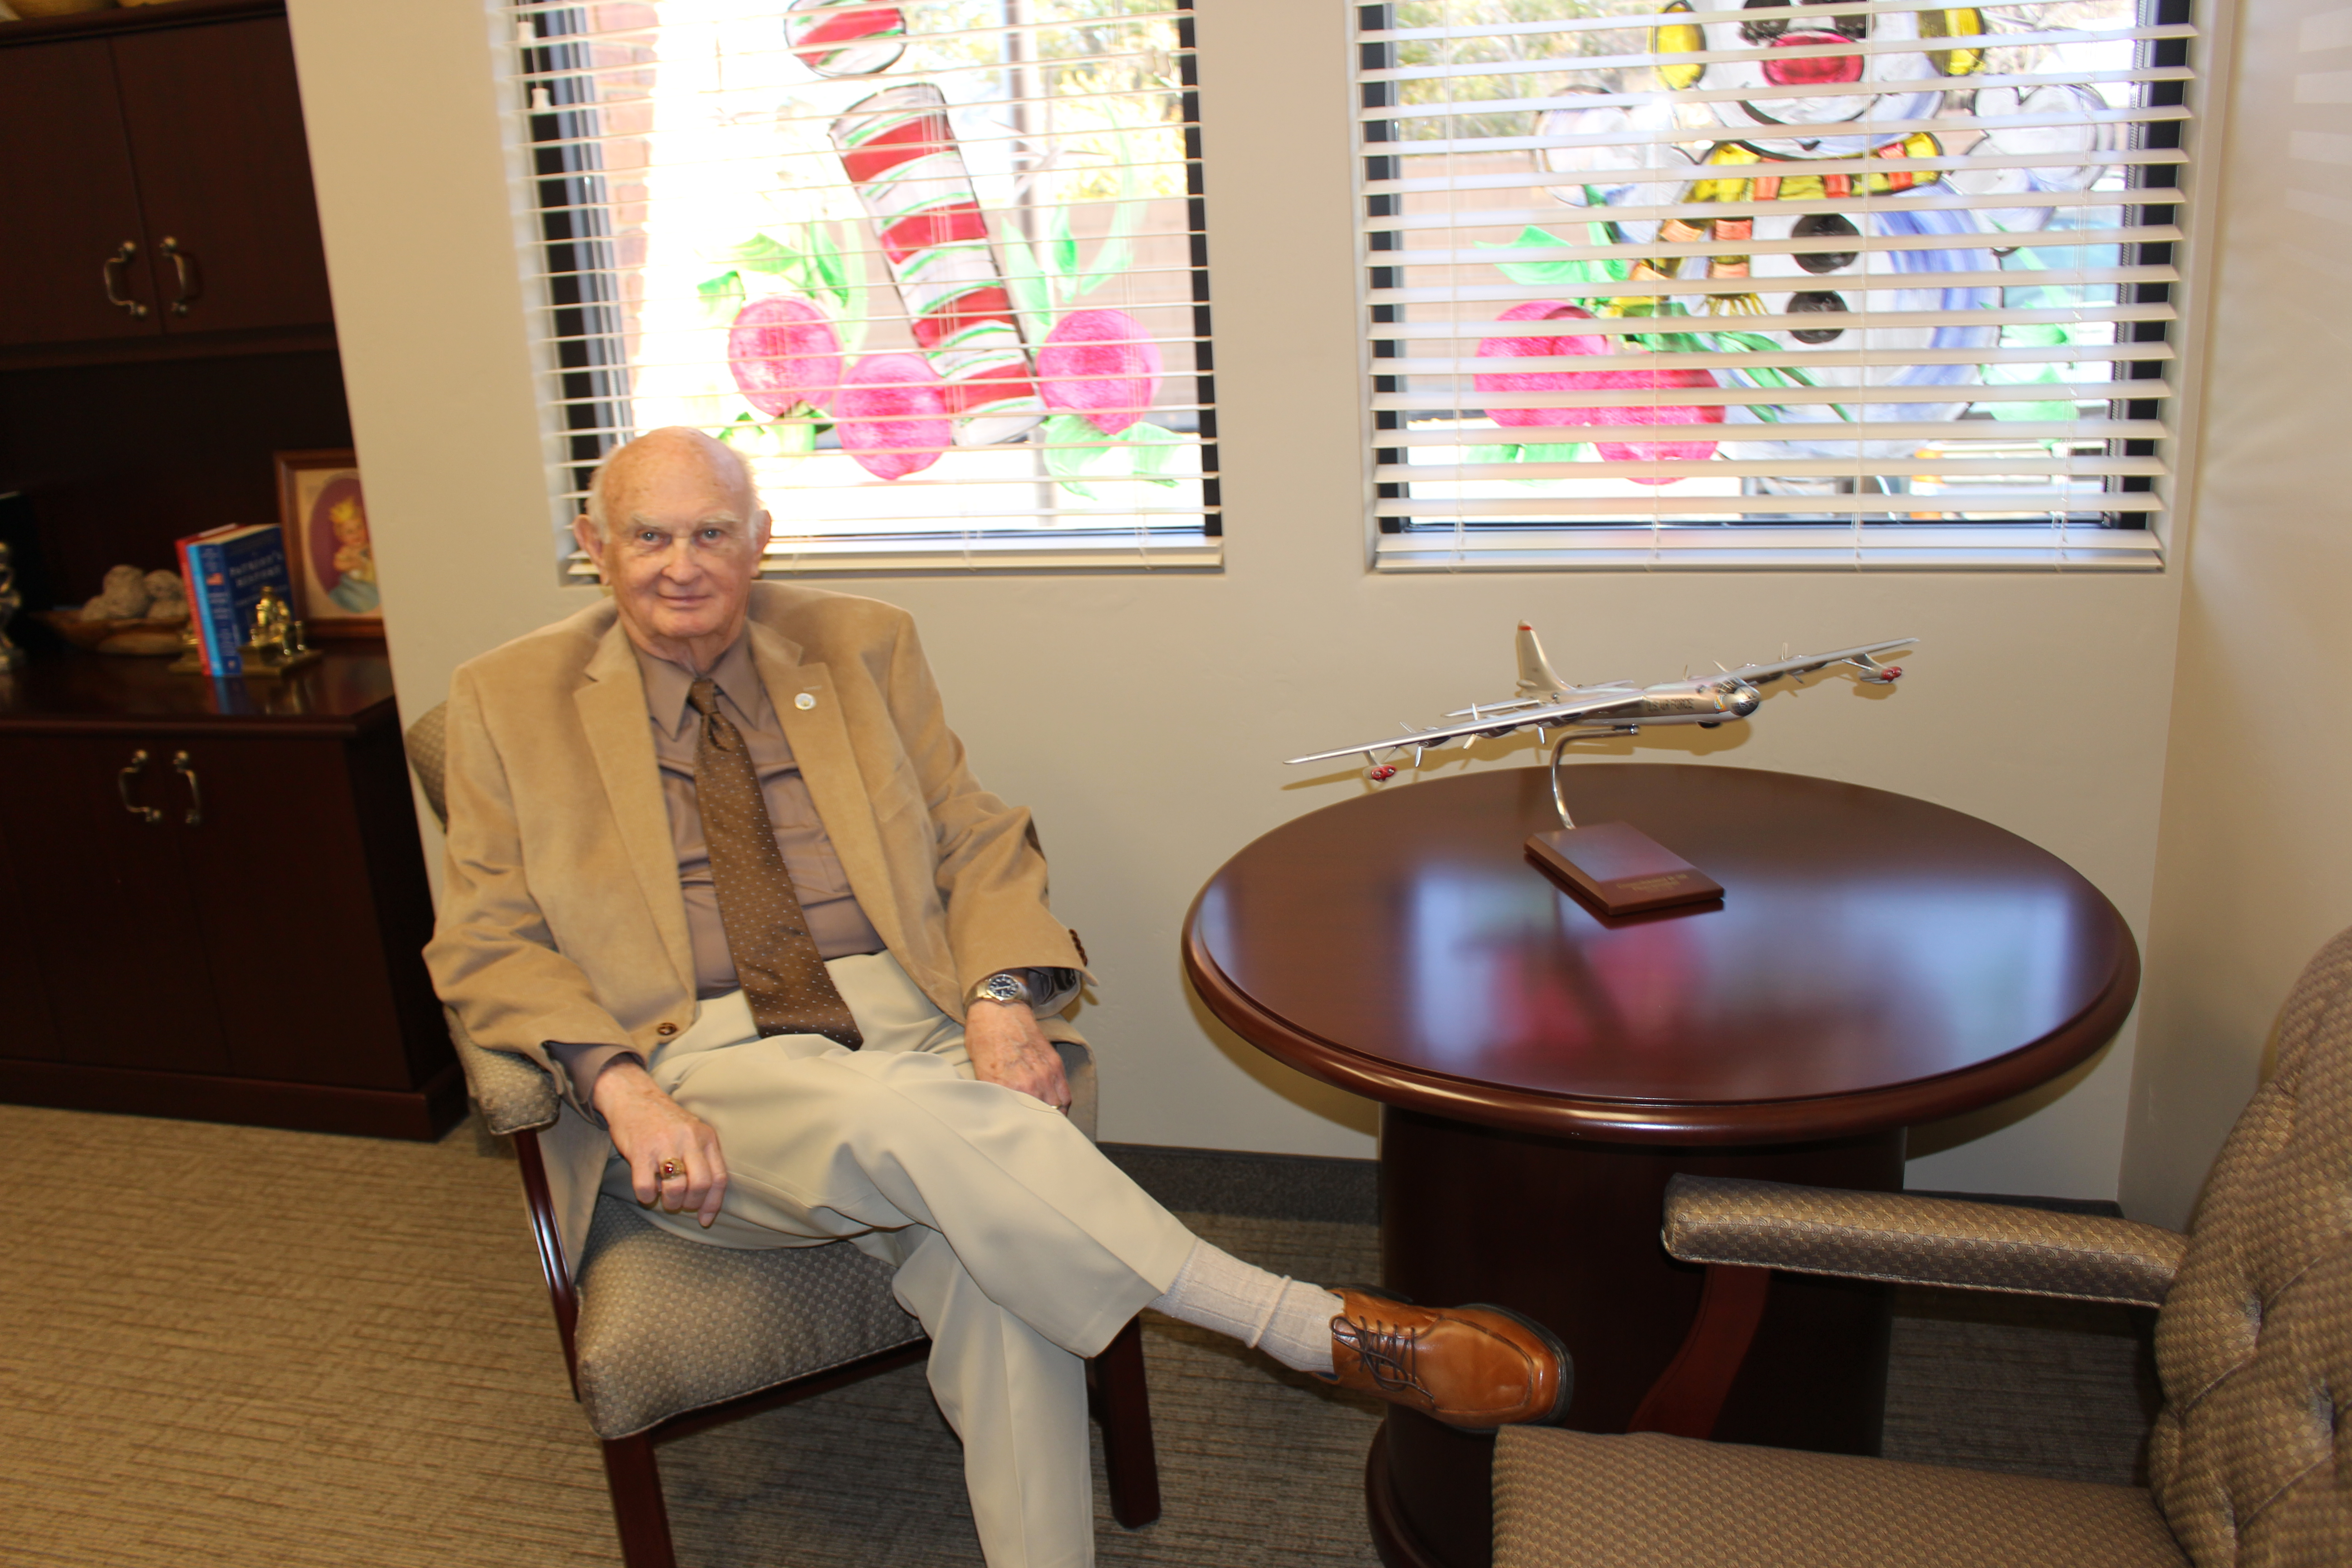 Mayor Donald Landes sits in his office in the new city office building, Parowan, Utah, Nov. 20, 2015 | Photo by Emily Hammer, St. George News